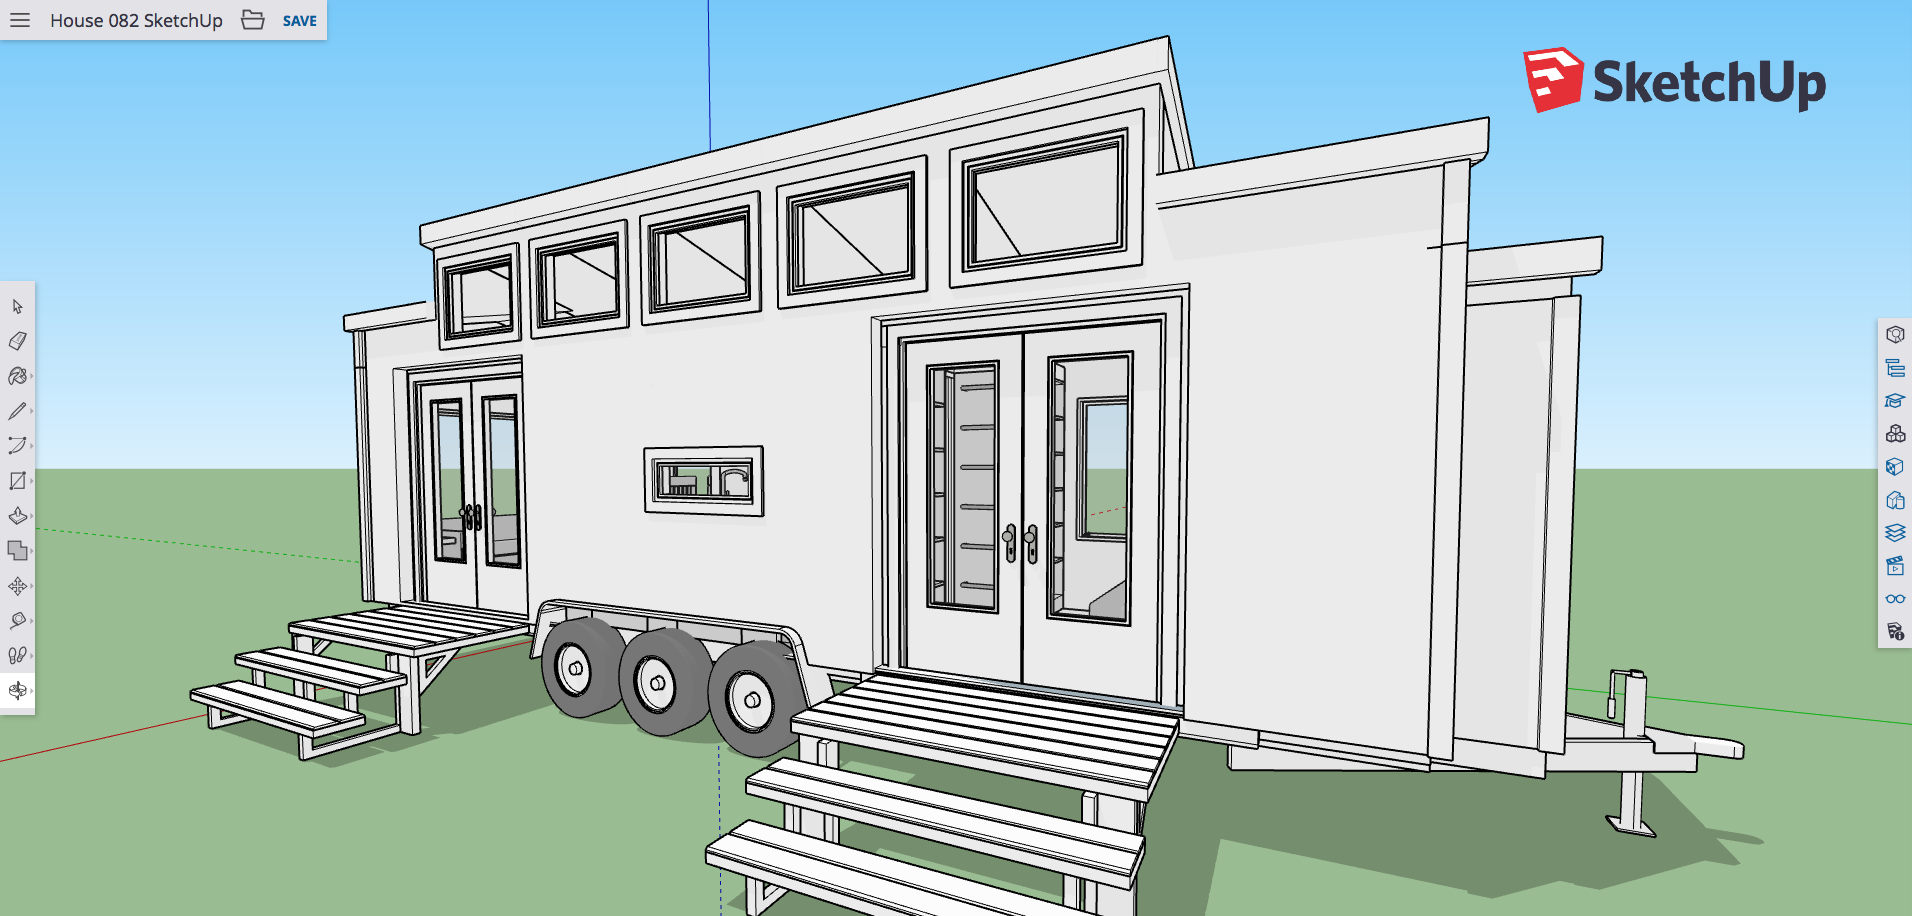 Getting Started with SketchUp Free